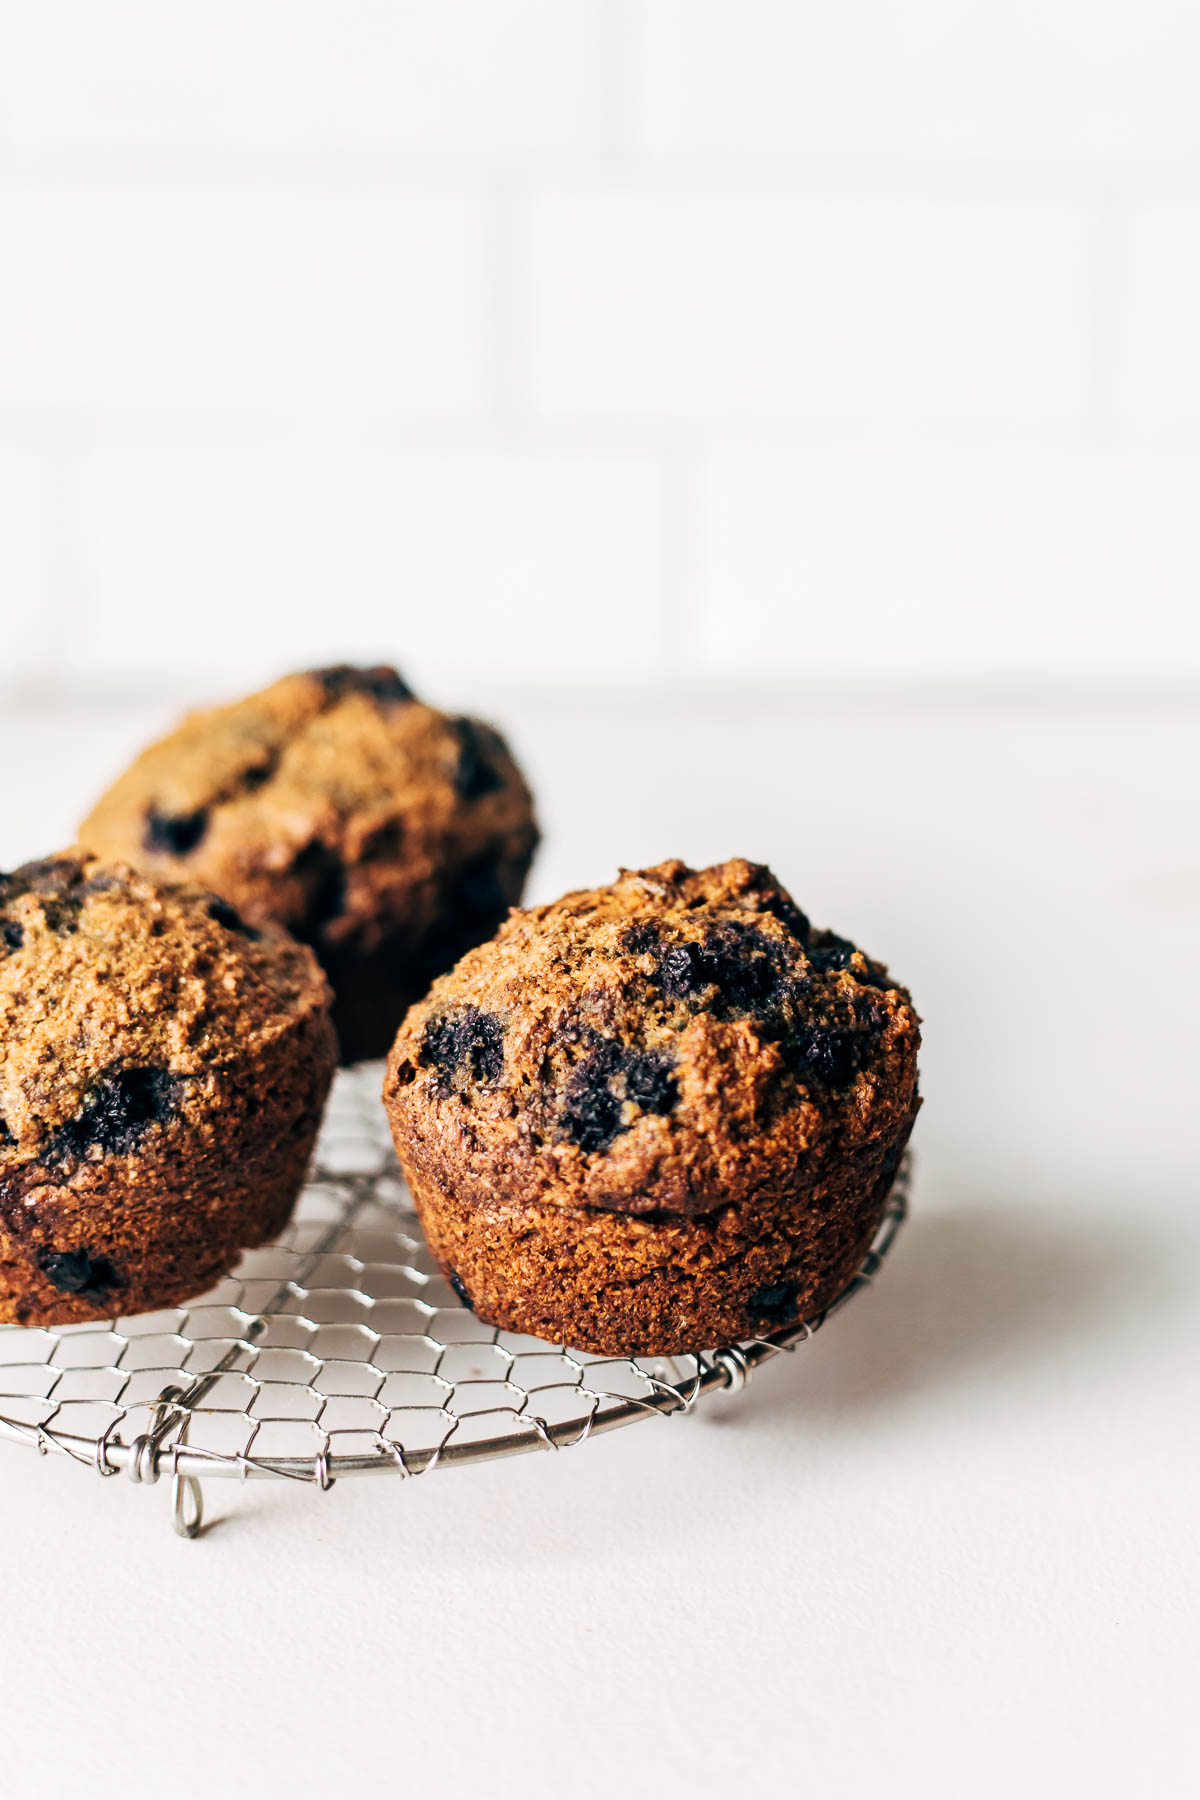 Three bran muffins on a small wire rack.